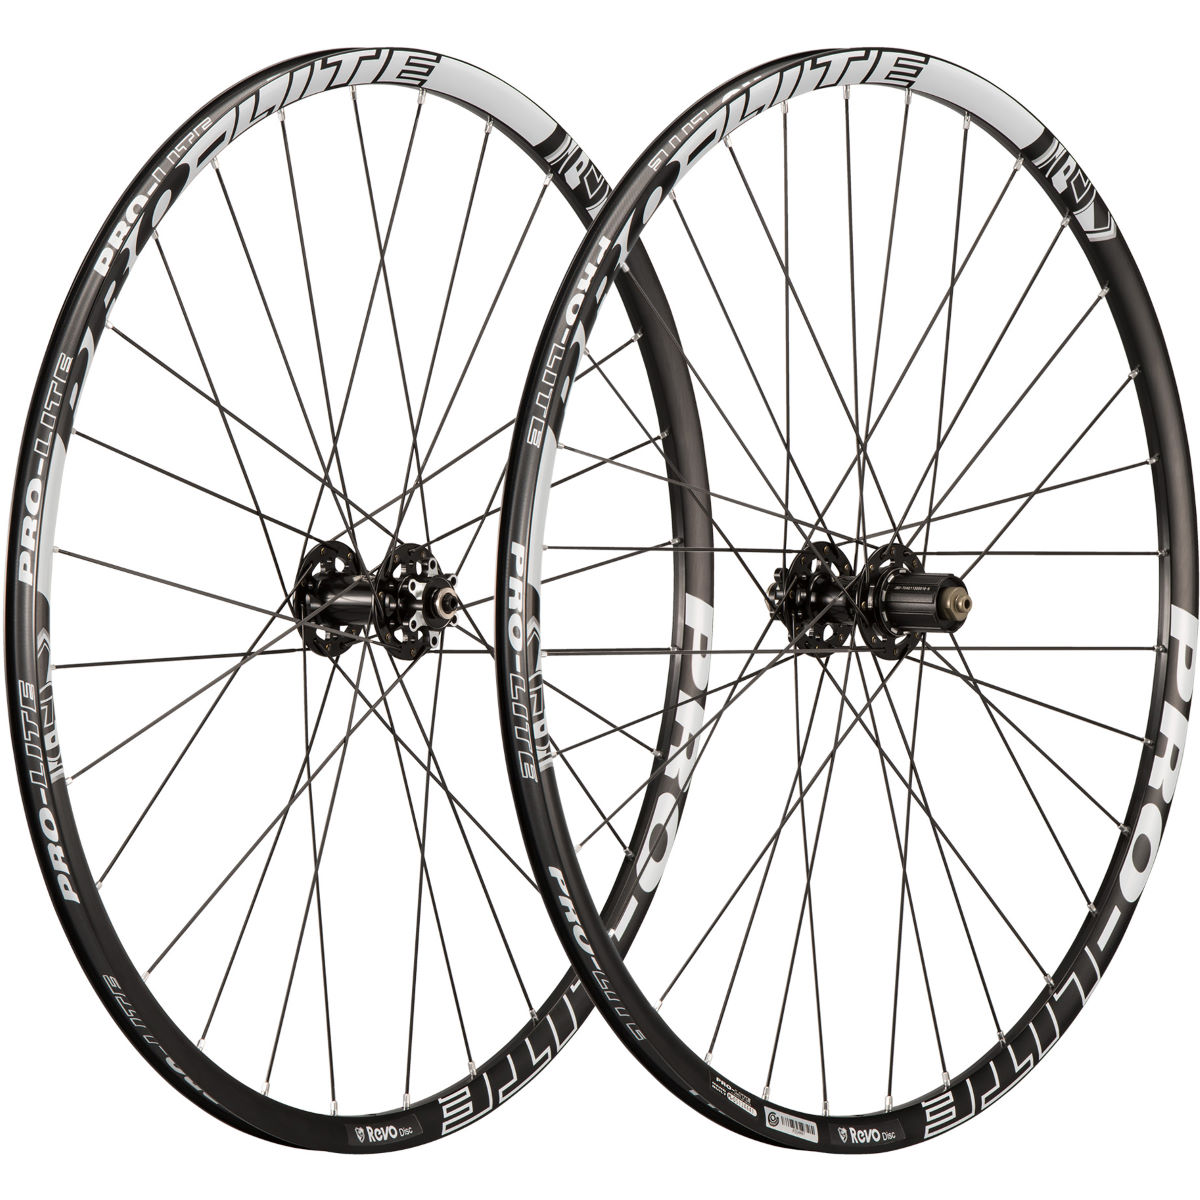 Pro Lite Revo A21 Alloy Road Disc Brake Wheelset